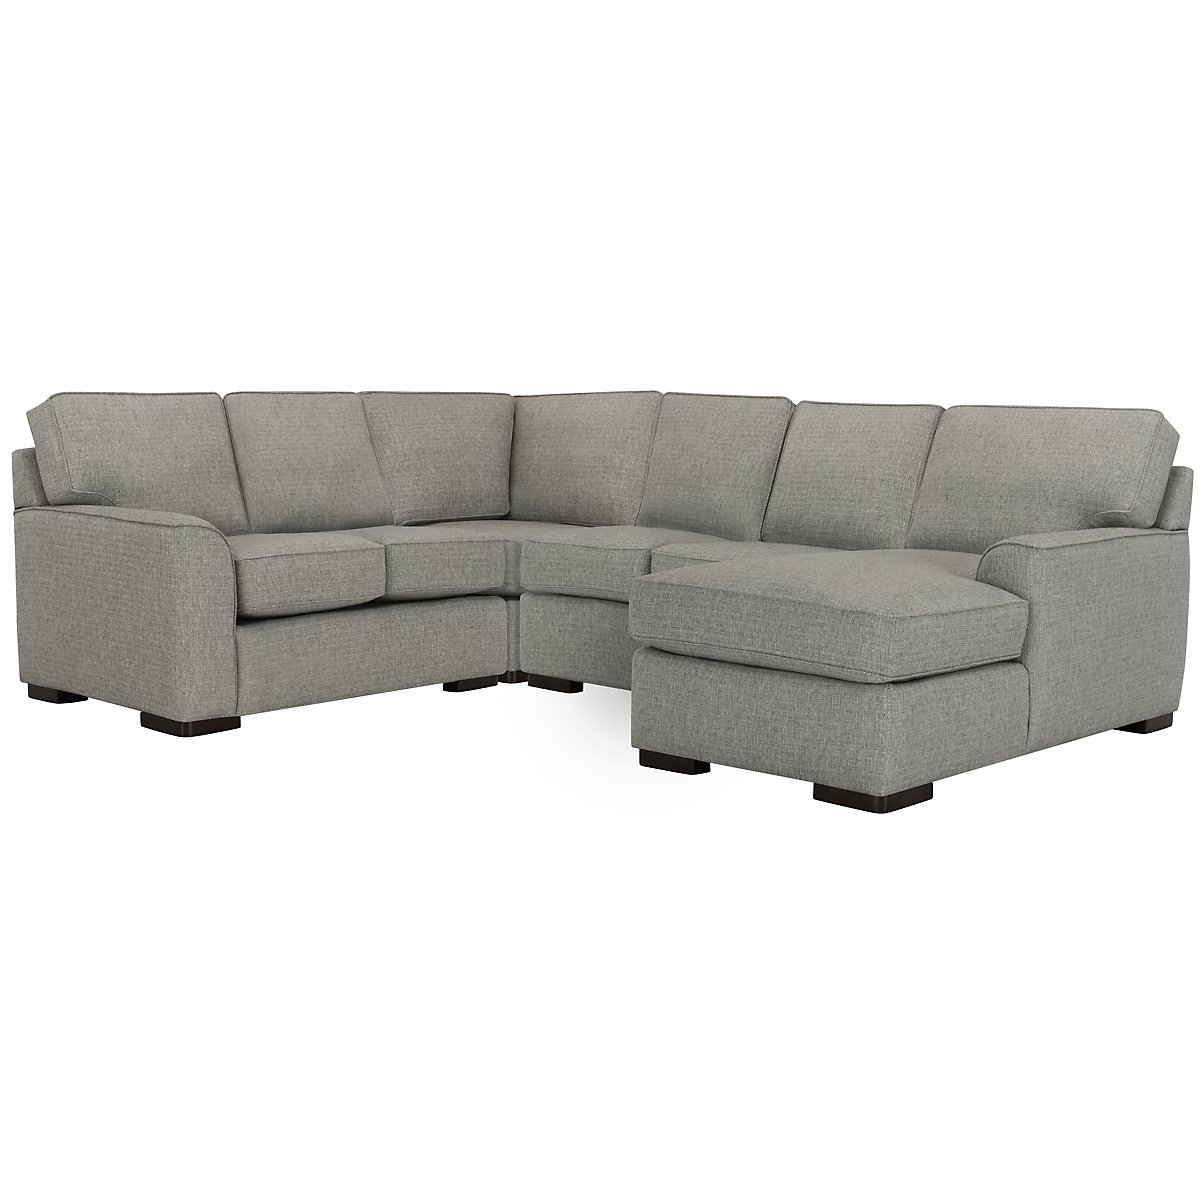 Austin Gray Fabric Medium Right Chaise Sectional